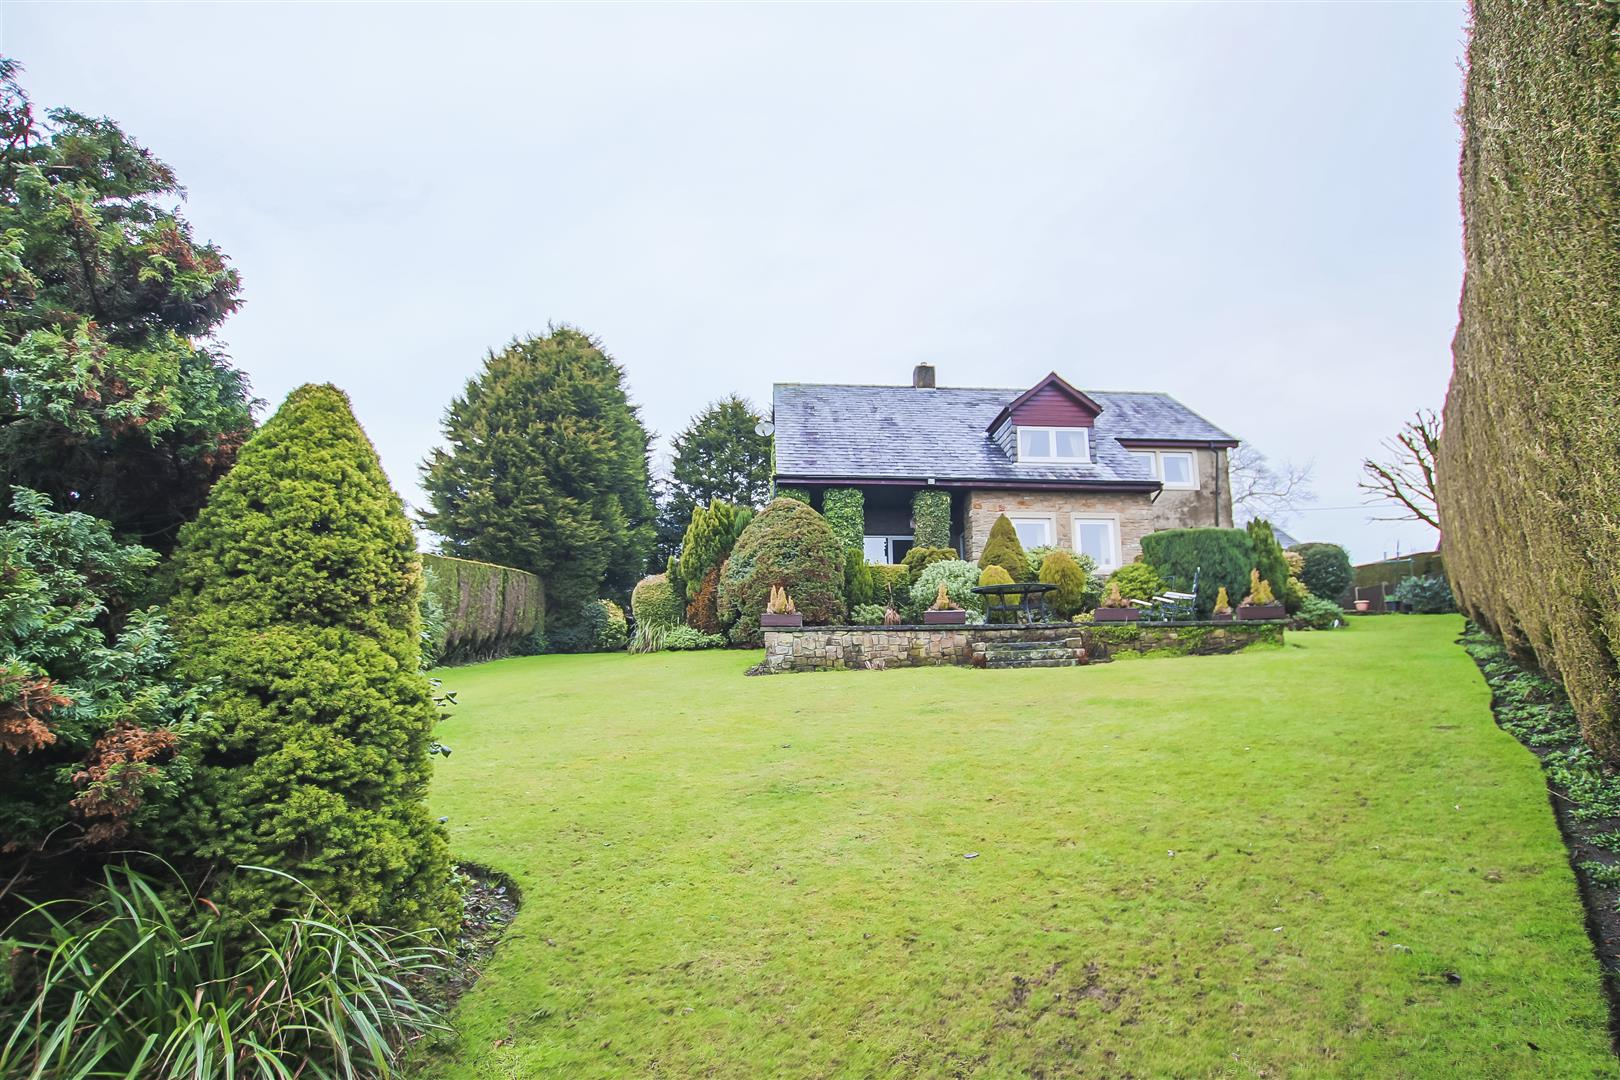 4 Bedroom Detached House For Sale - Rear Garden